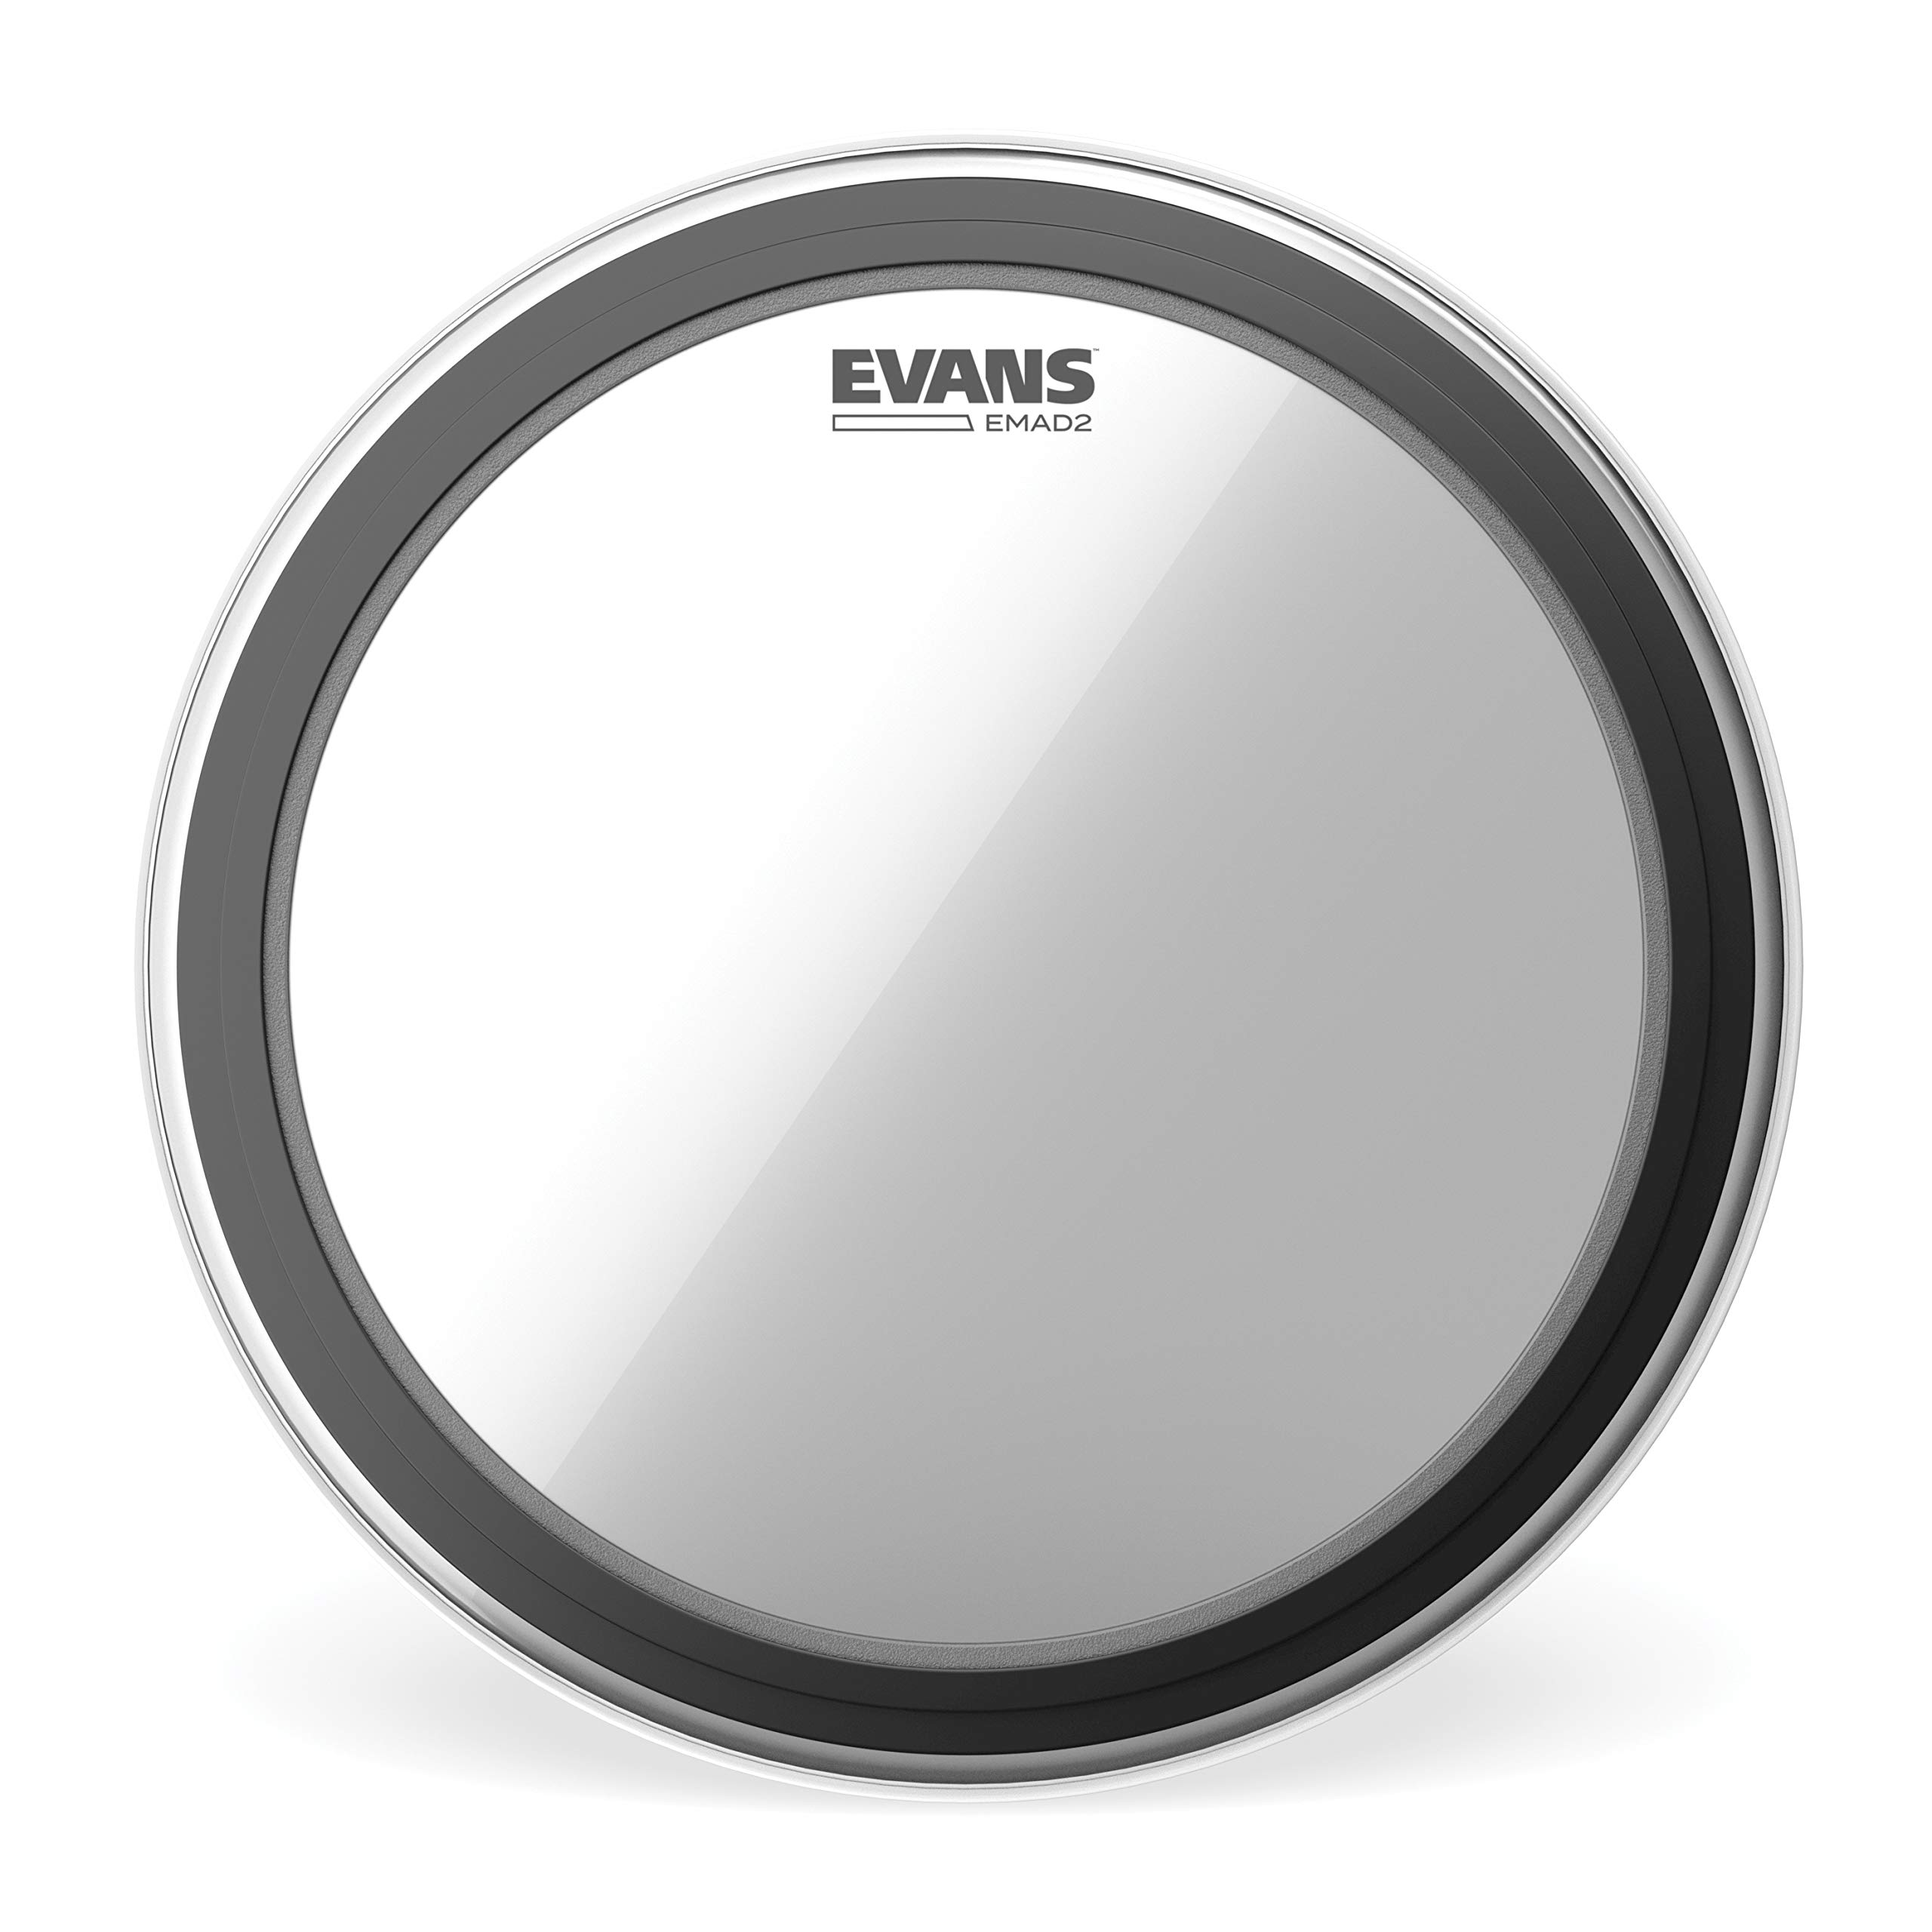 Evans EMAD2 Clear Bass Drum Head, 26'' - Externally Mounted Adjustable Damping System Allows Player to Adjust Attack and Focus - 2 Foam Damping Rings for Sound Options - Versatile for All Music Genres by Evans